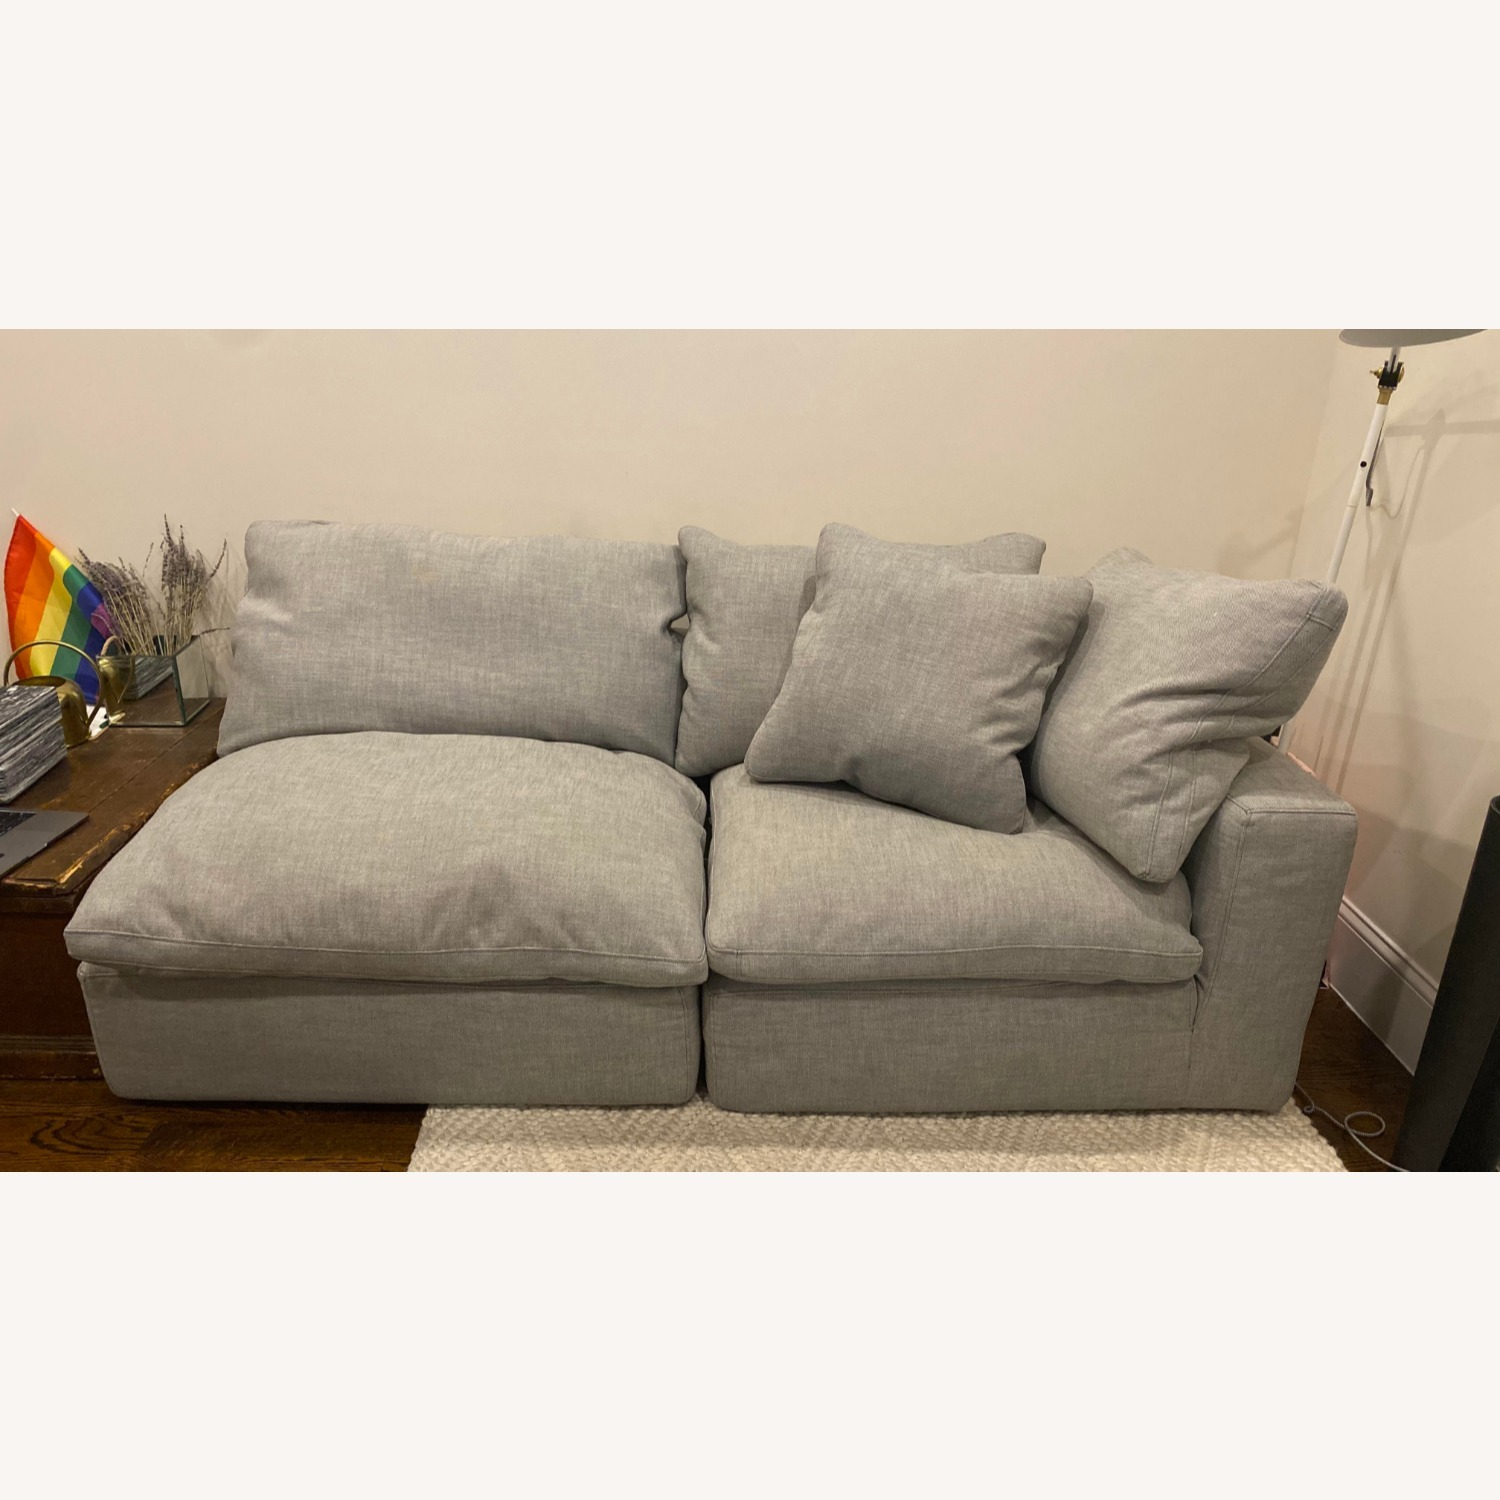 Restoration Hardware Cloud Couch Sectional - image-5